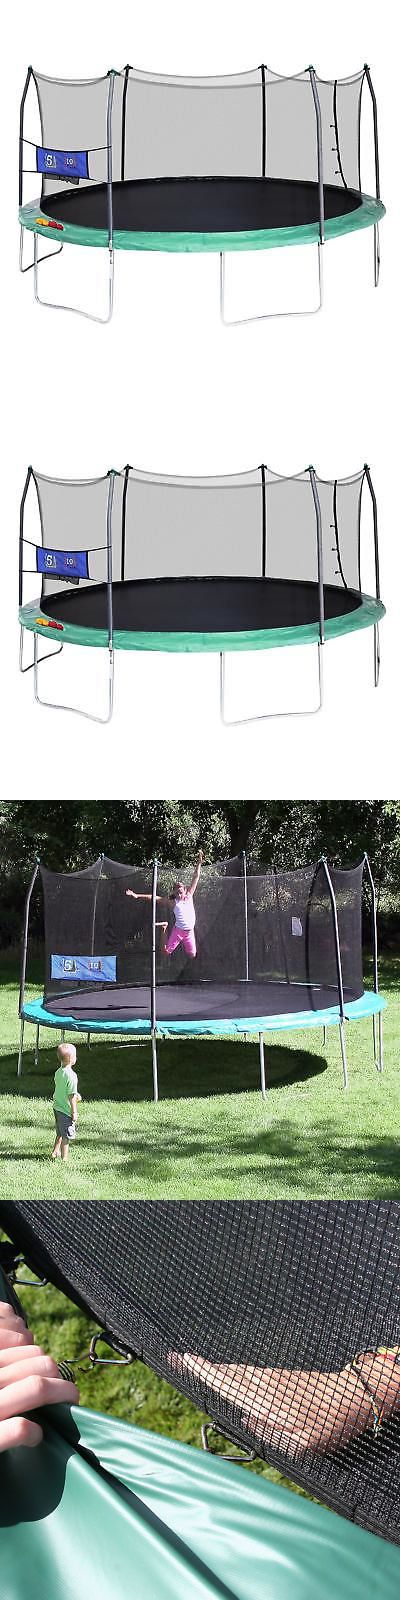 Trampolines 145999: Skywalker Trampolines Green 16-Foot Oval Trampoline With Enclosure And Toss Game -> BUY IT NOW ONLY: $328.94 on eBay!